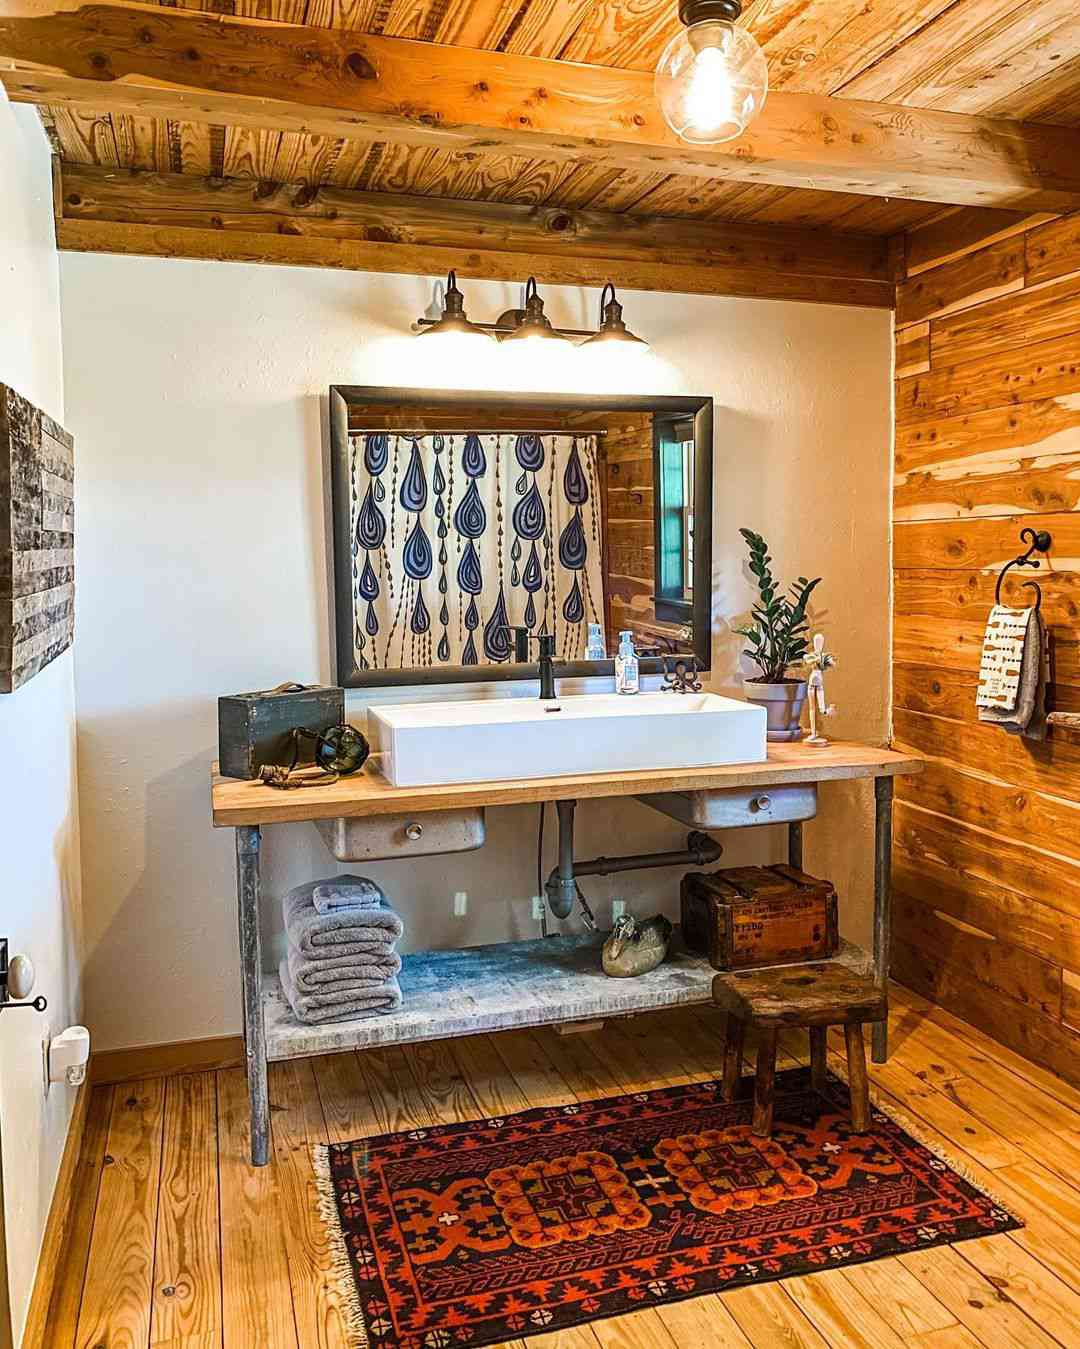 Rustic bathroom with wooden ceiling